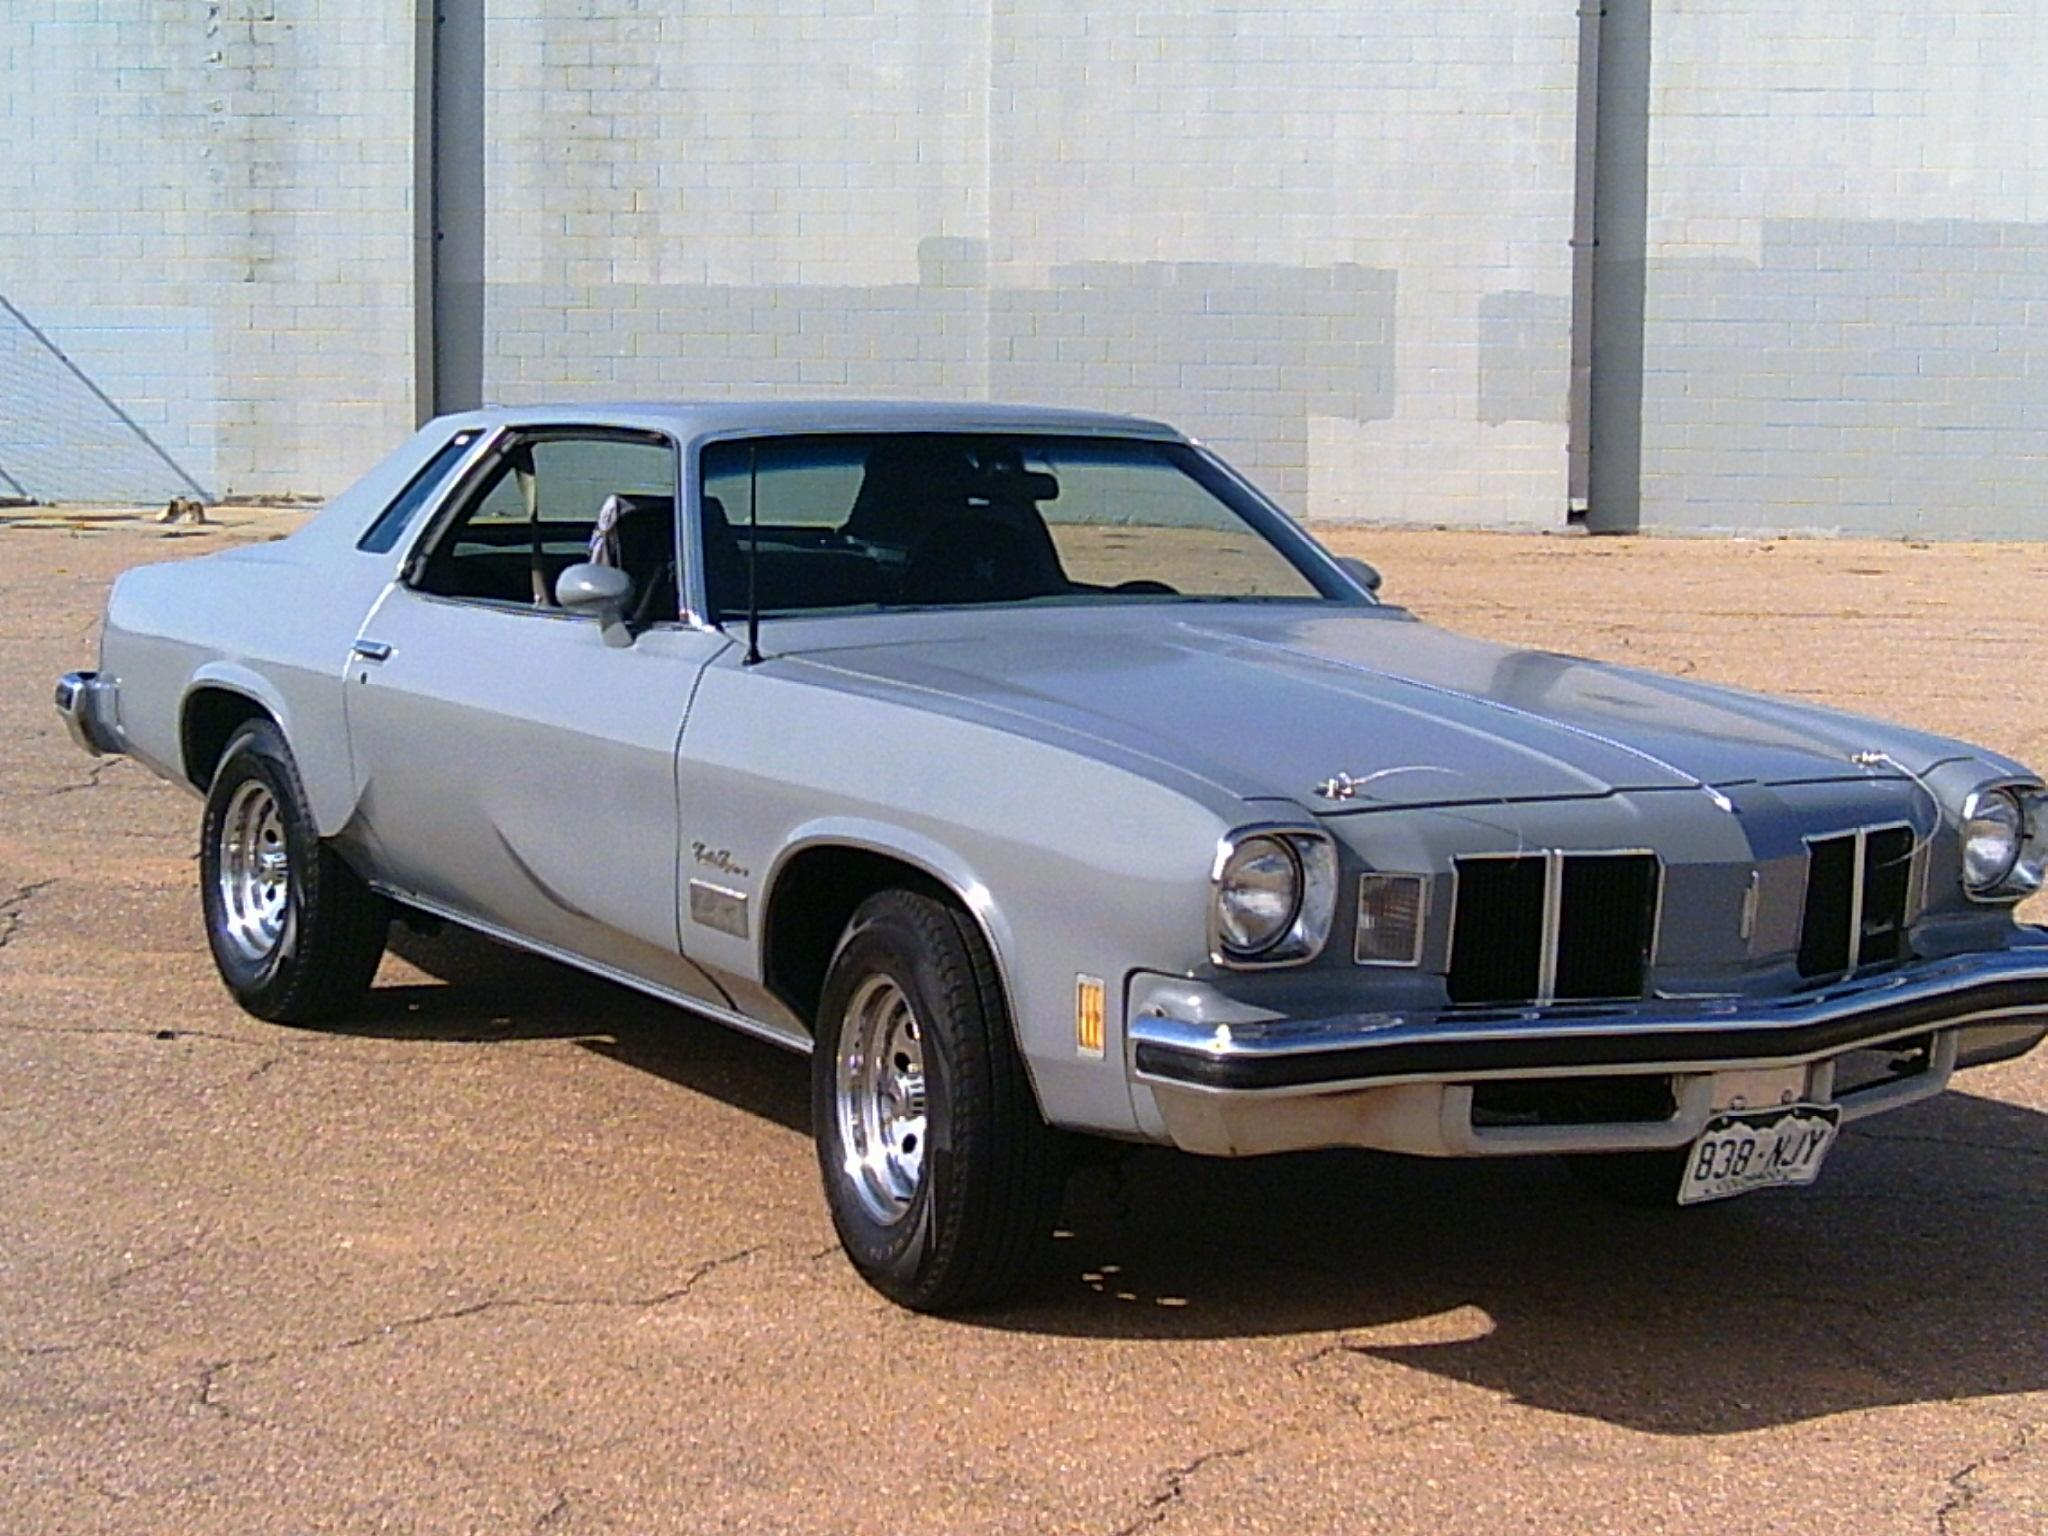 Rocketman1974 1974 oldsmobile cutlass supreme specs for 1974 oldsmobile cutlass salon for sale